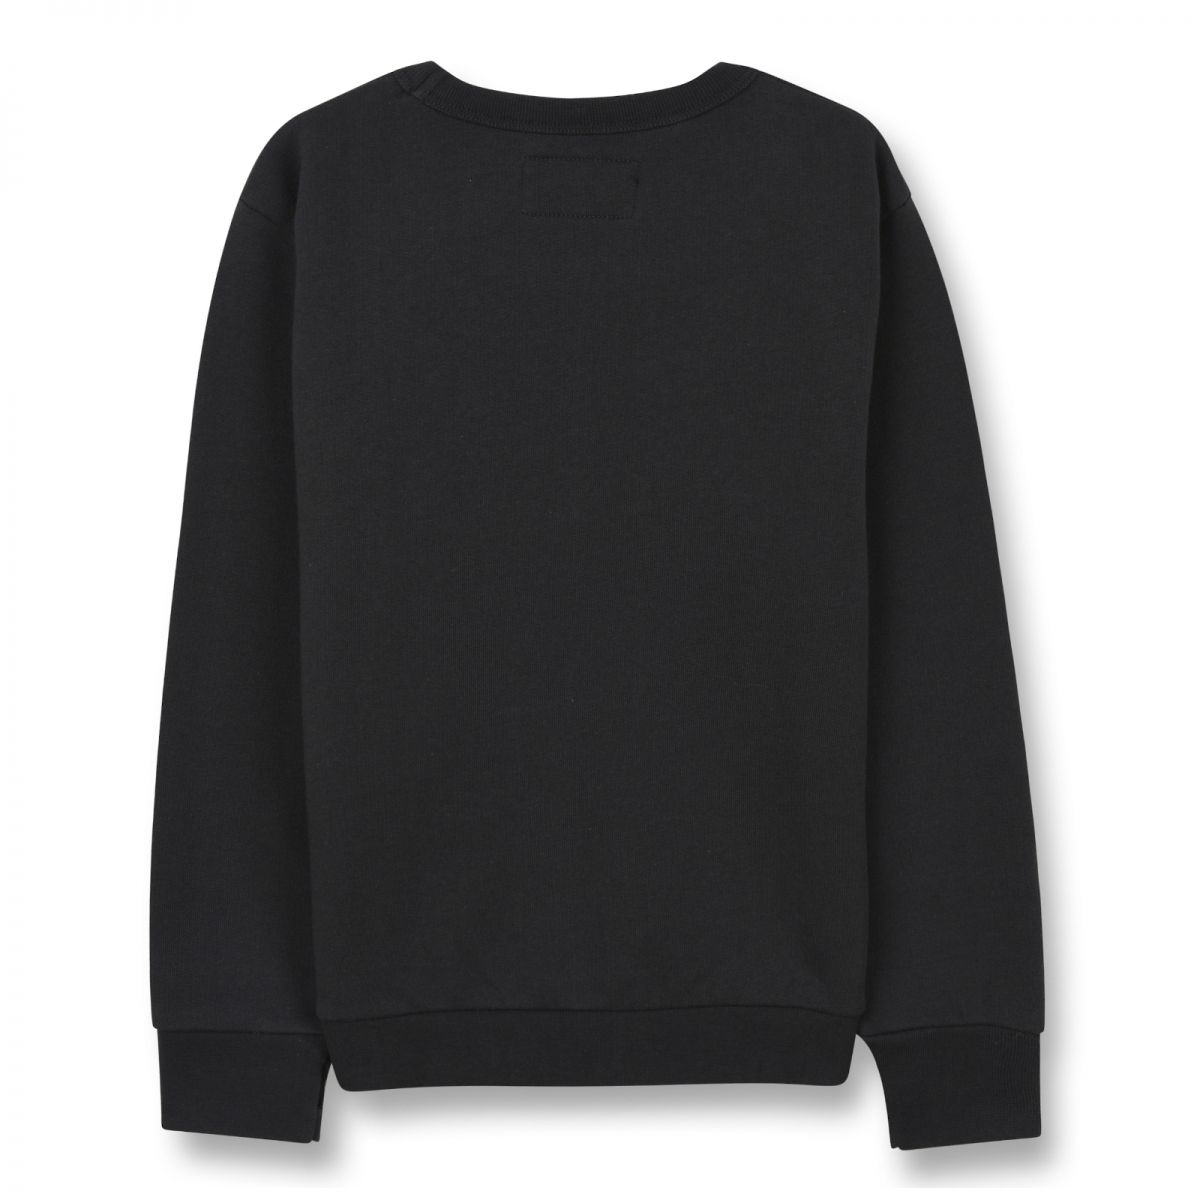 Finger in the nose Brian Sweatshirt Black